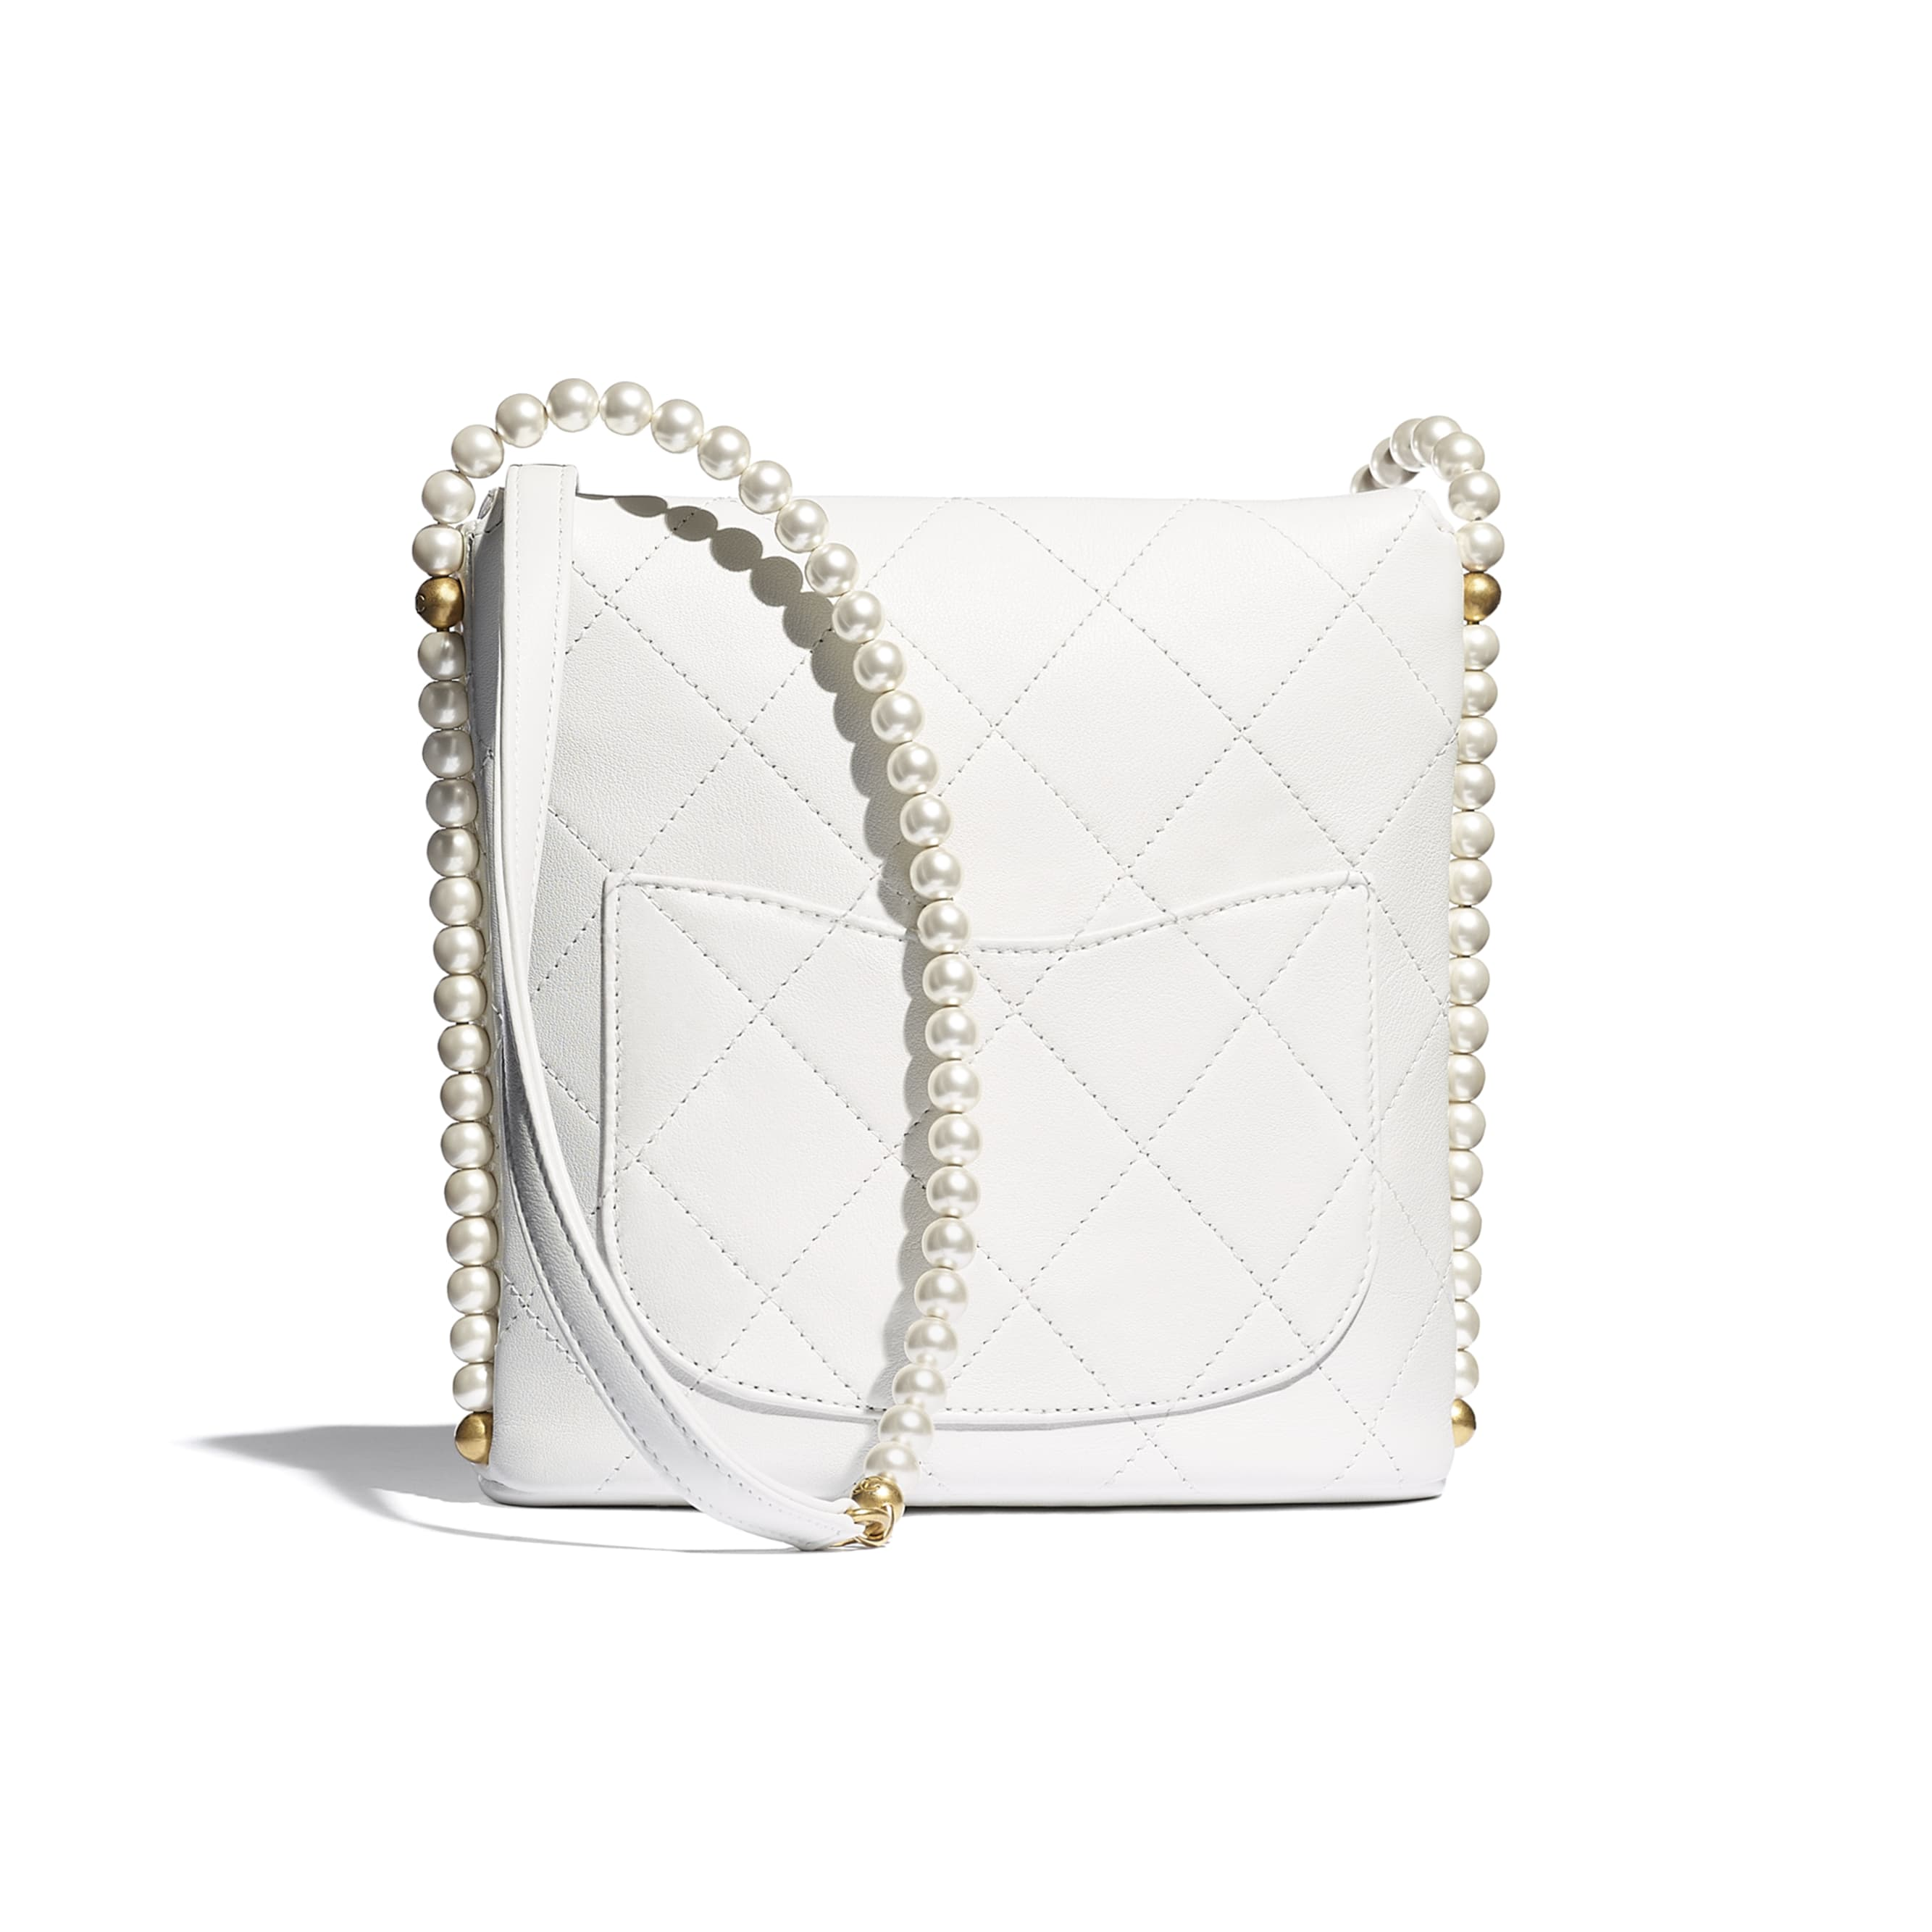 Small Hobo Bag - White - Calfskin, Imitation Pearls & Gold-Tone Metal - CHANEL - Alternative view - see standard sized version